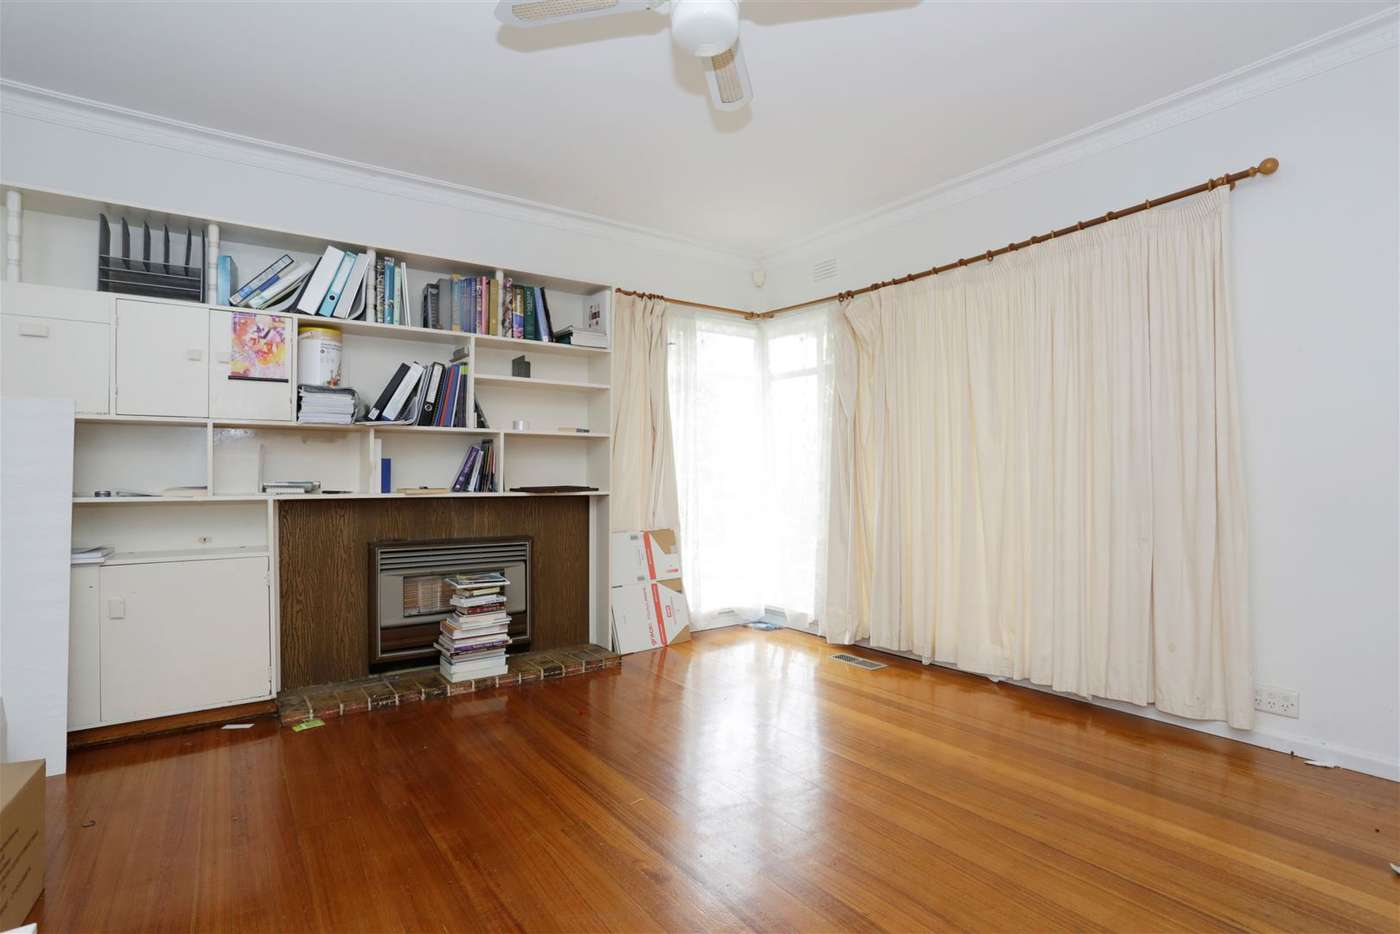 Main view of Homely house listing, 15 Damon Road, Mount Waverley VIC 3149